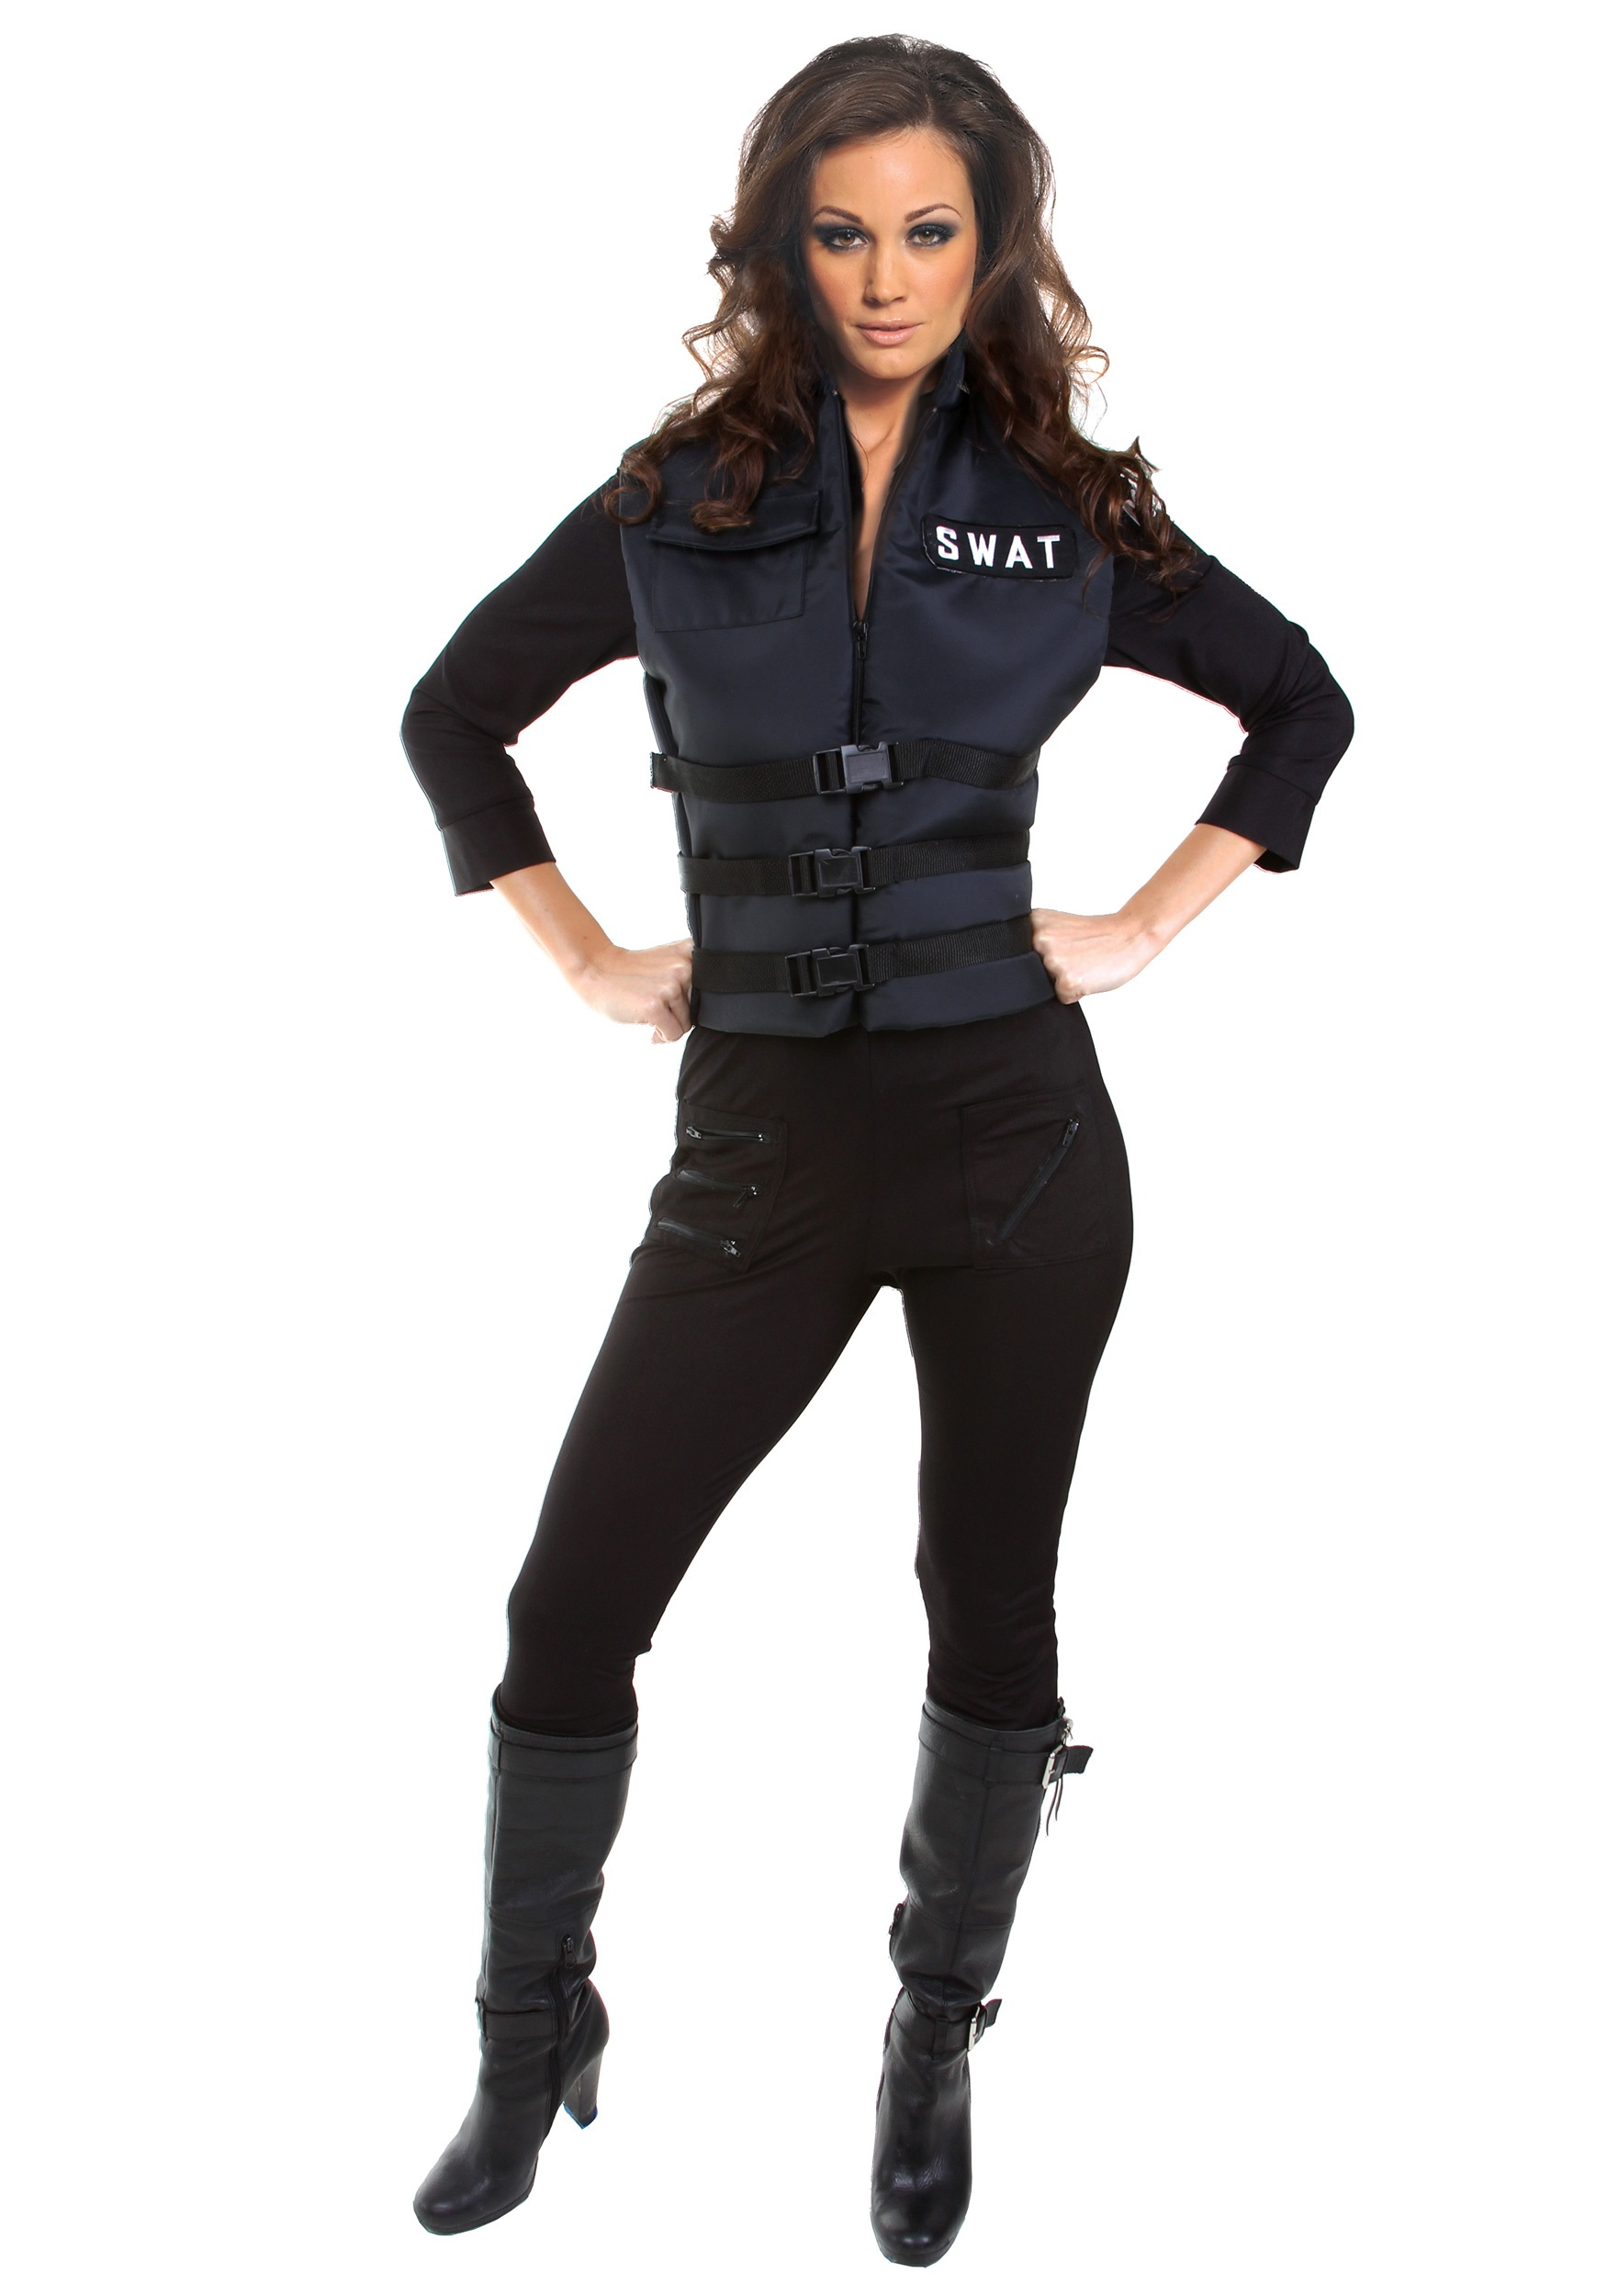 sexy swat girl costume - Tough Girl Halloween Costumes